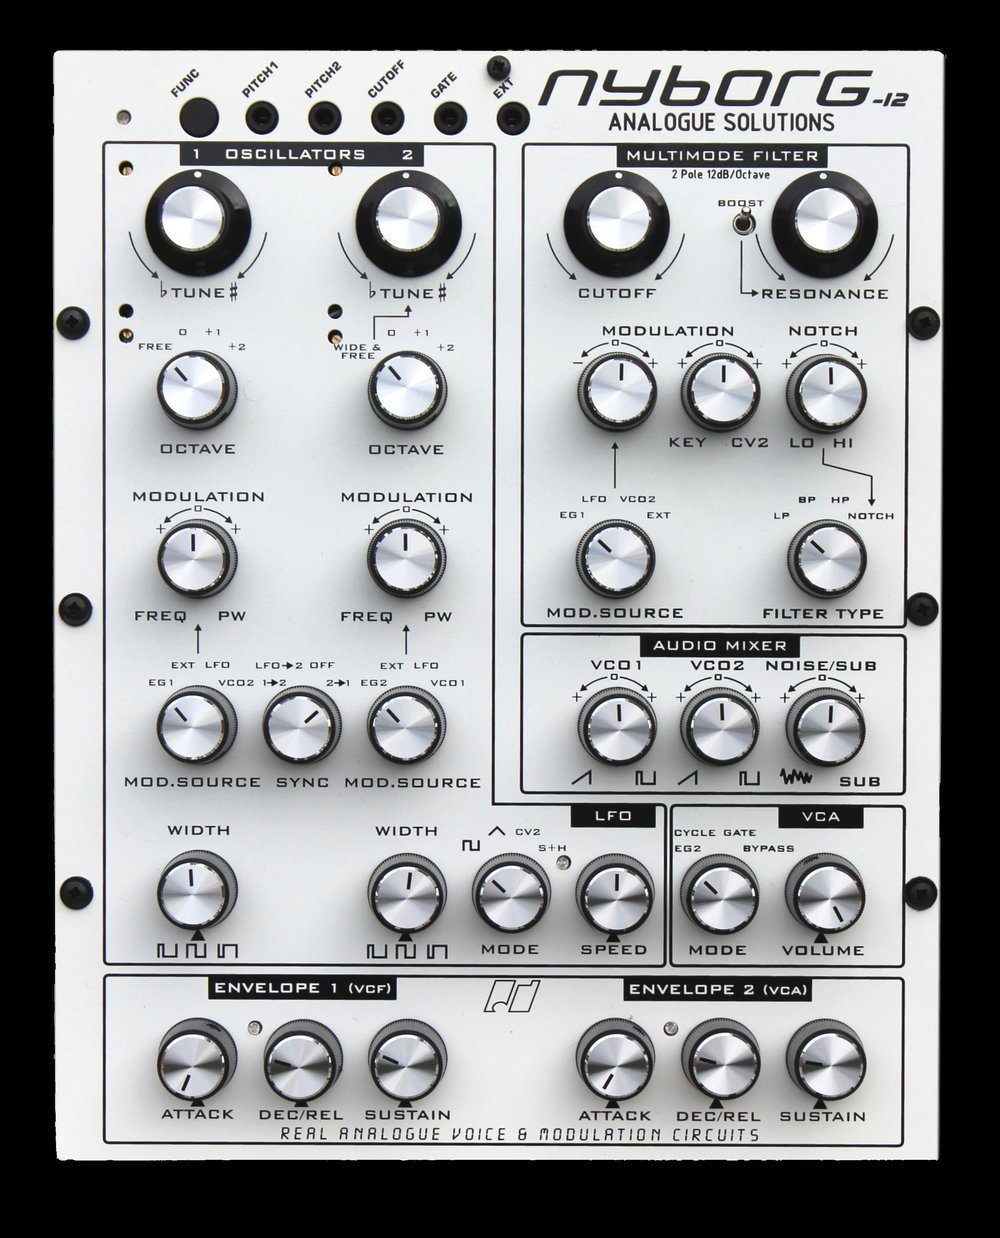 analogue-solutions-synthesizer-nyborg12-front.jpg